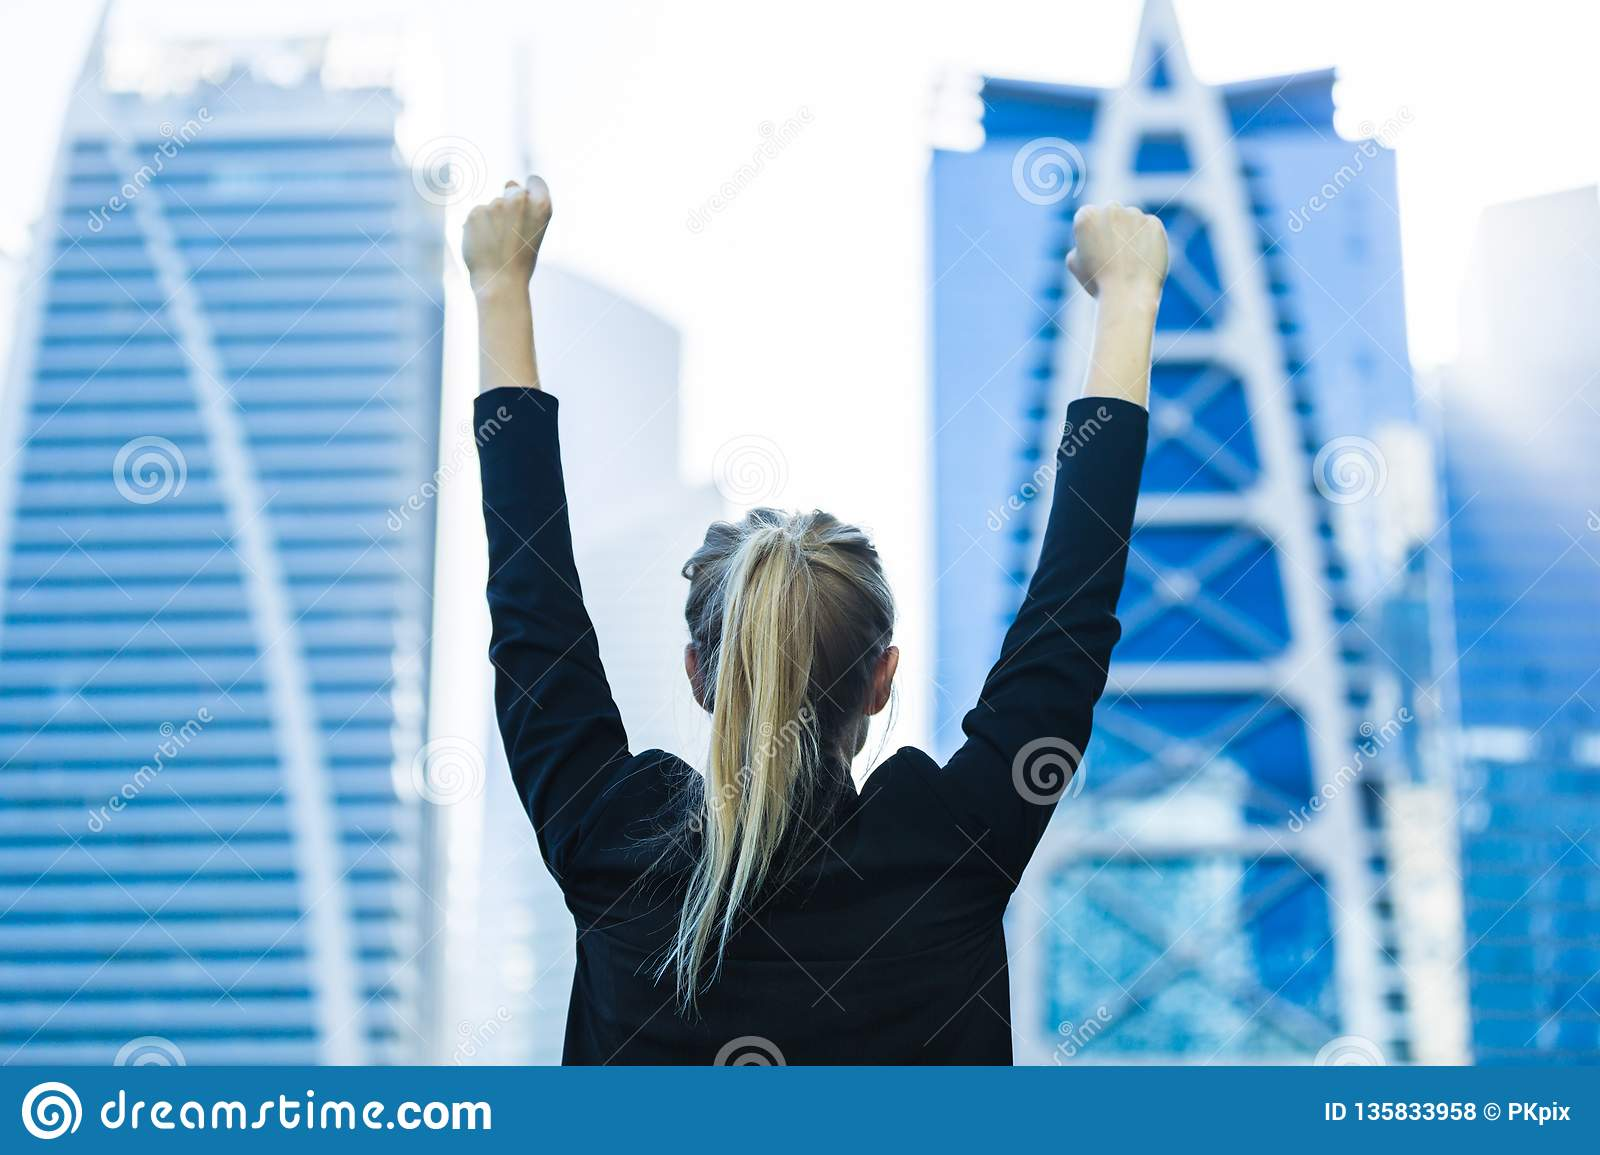 Business success - Celebrating businesswoman overlooking the city center high-rises